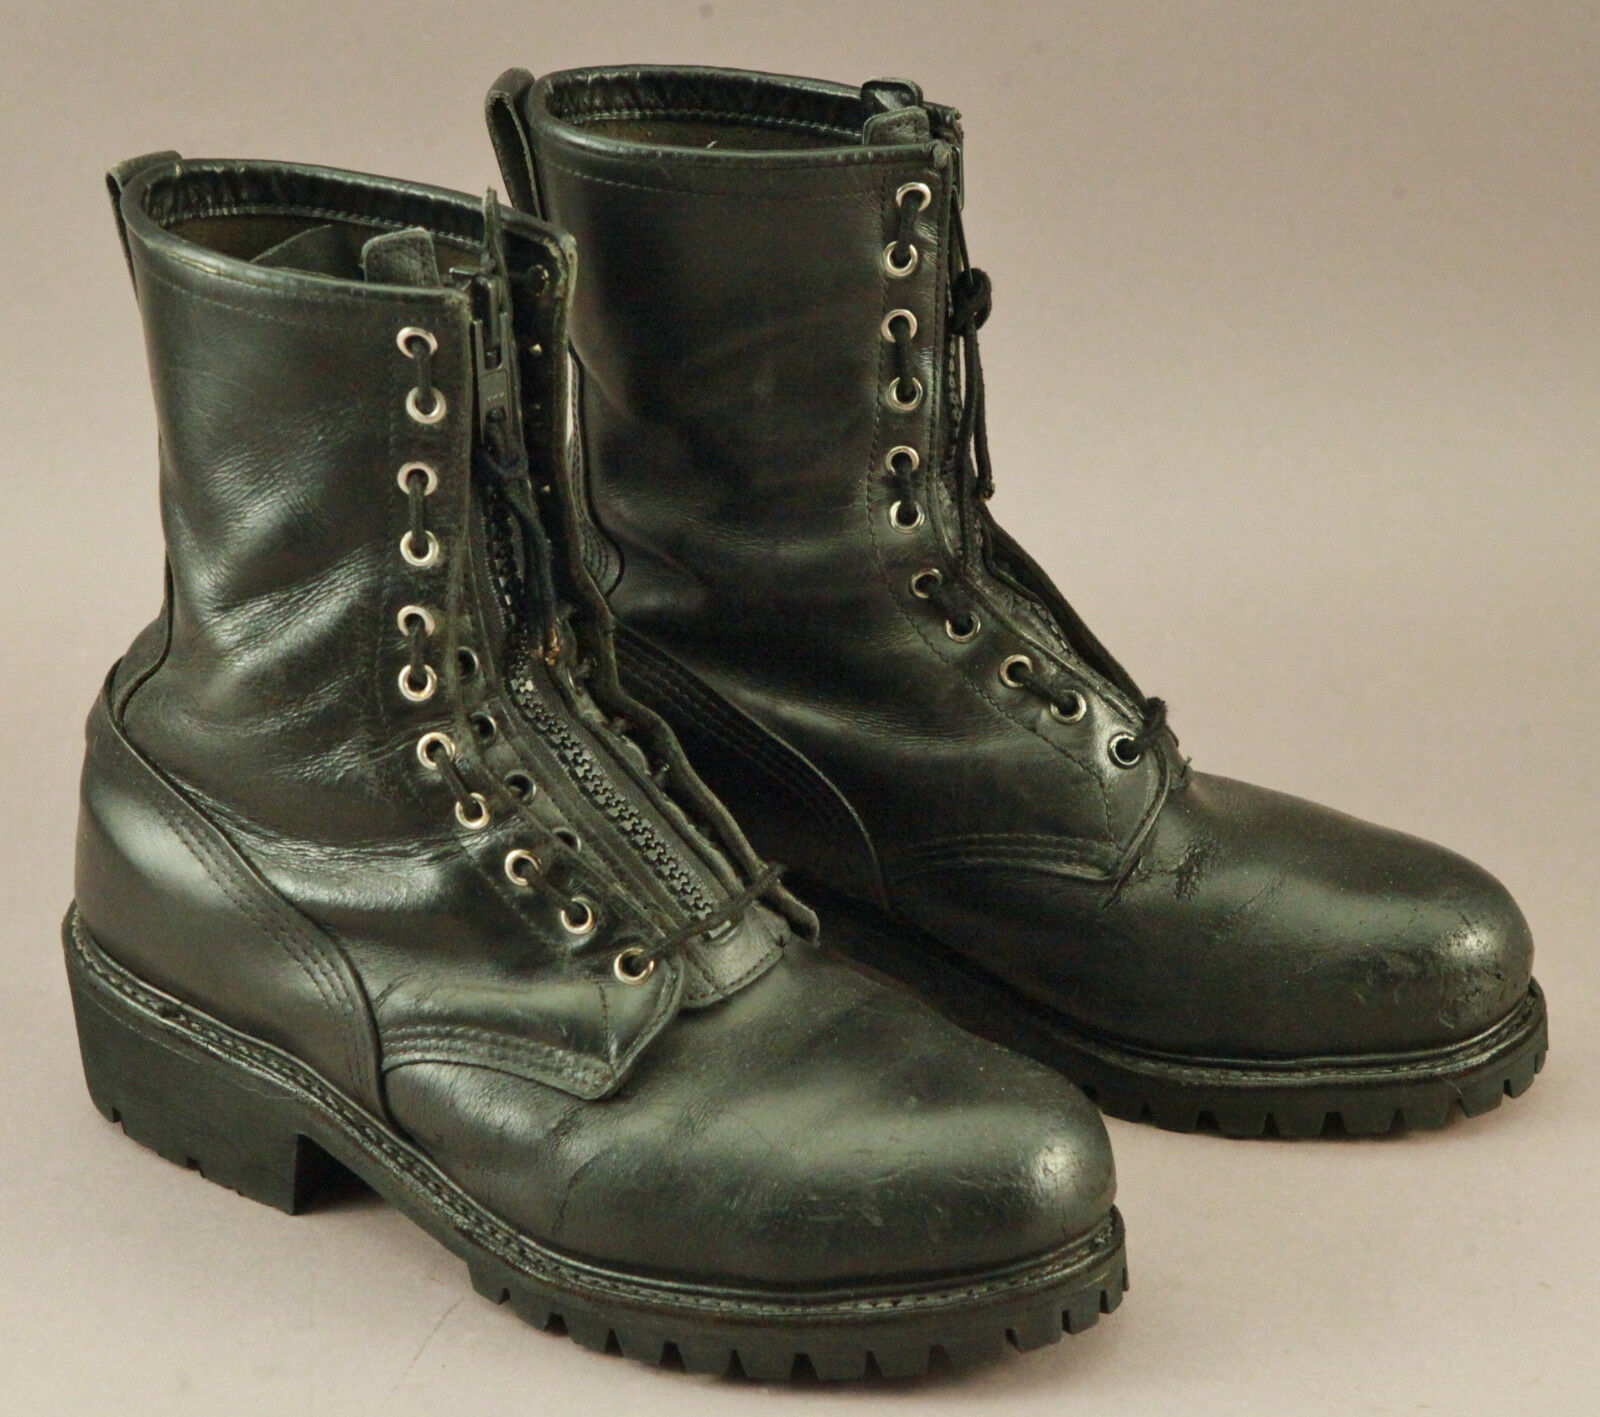 21b1fcc691e Vintage Red Wing boots black black black leather zip steel toe ...